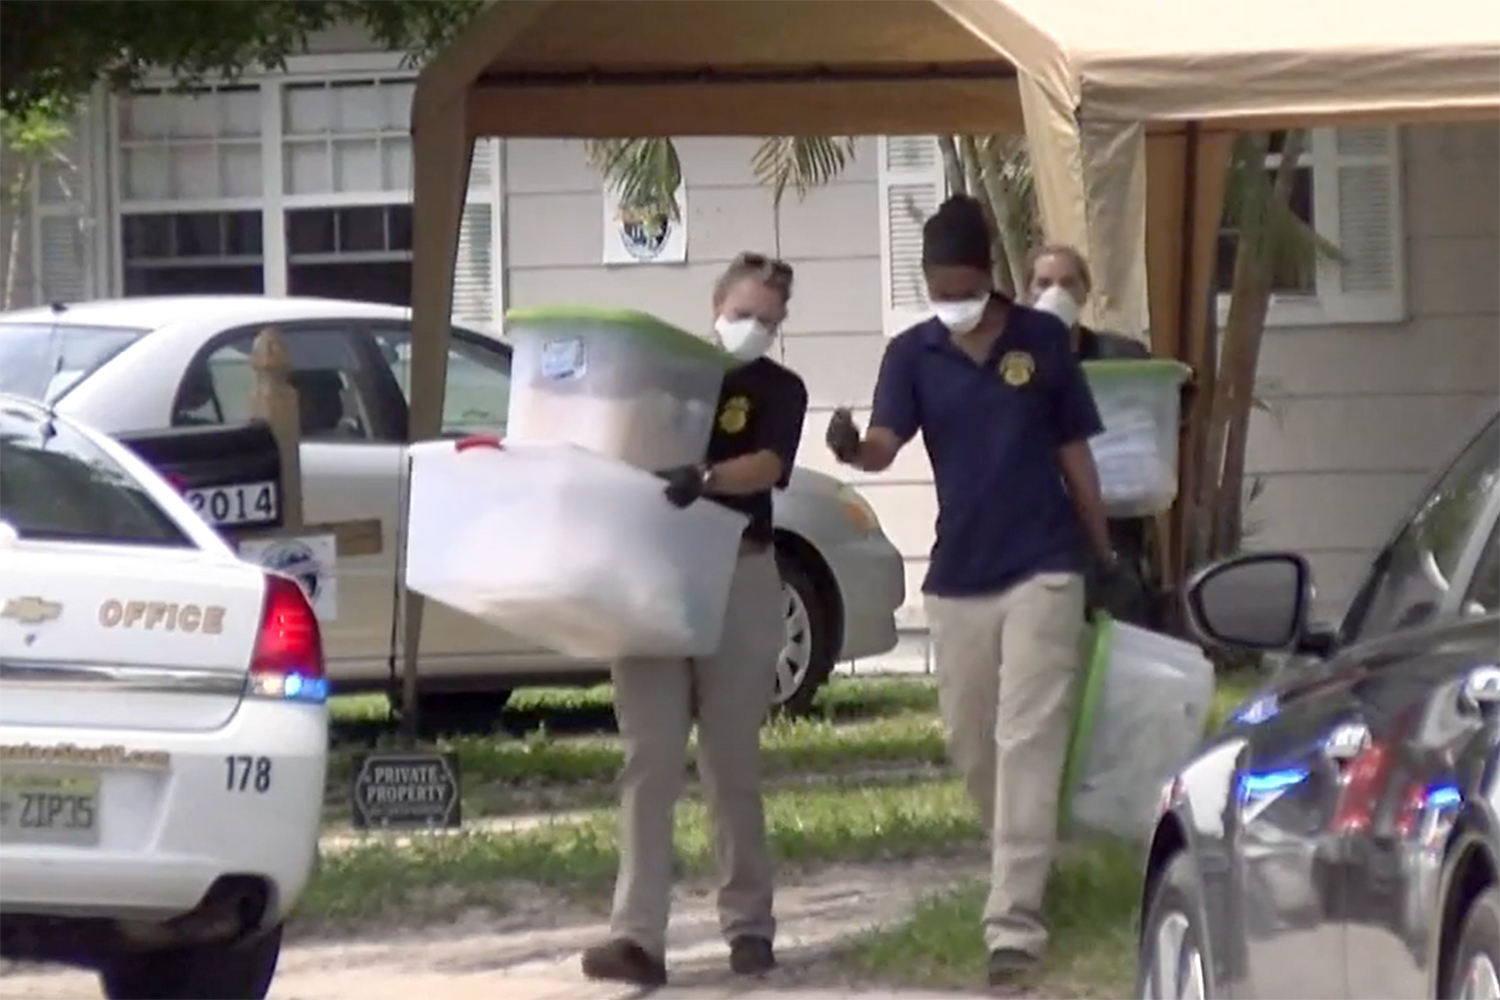 Florida Father and His Three Sons Indicted for Selling  Million Worth of Toxic Bleach Marketed as 'Miracle Mineral Solution' to Cure Coronavirus and Other Illnesses